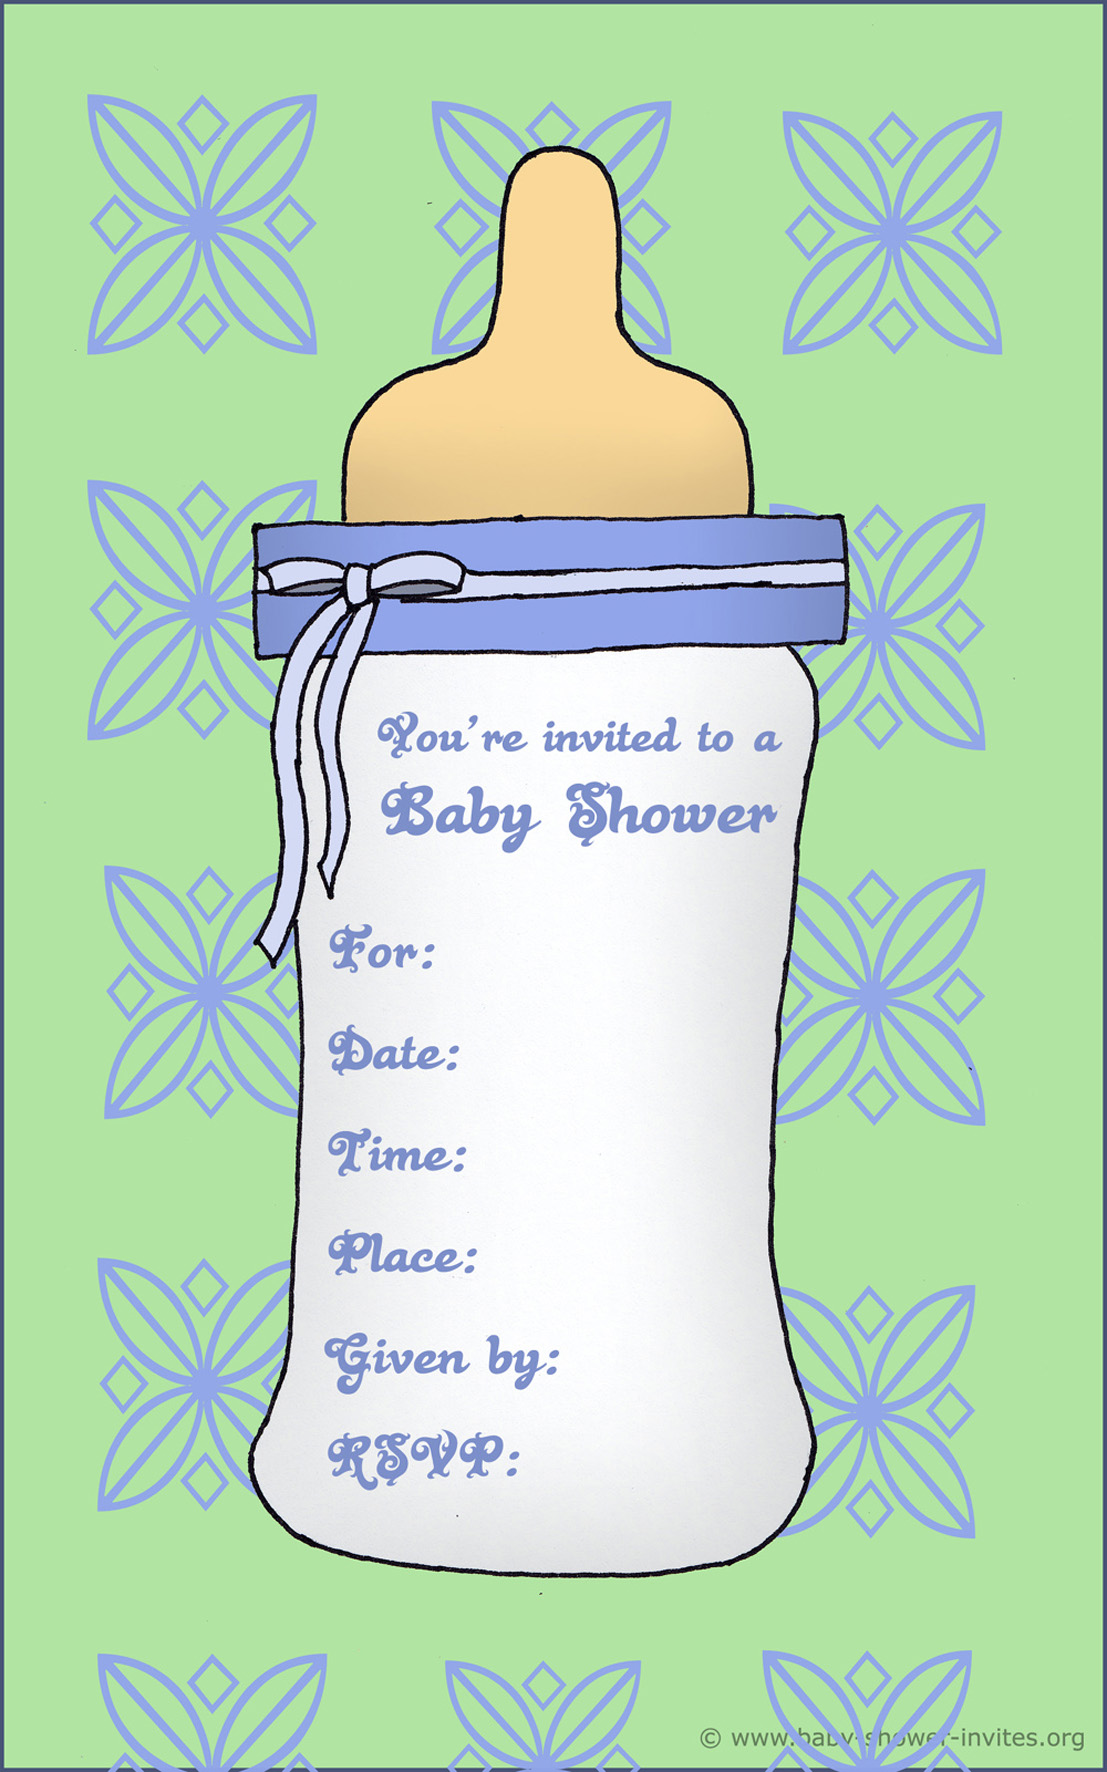 image about Free Printable Blank Baby Shower Invitations known as Youngster shower invites templates - www.toib.tk